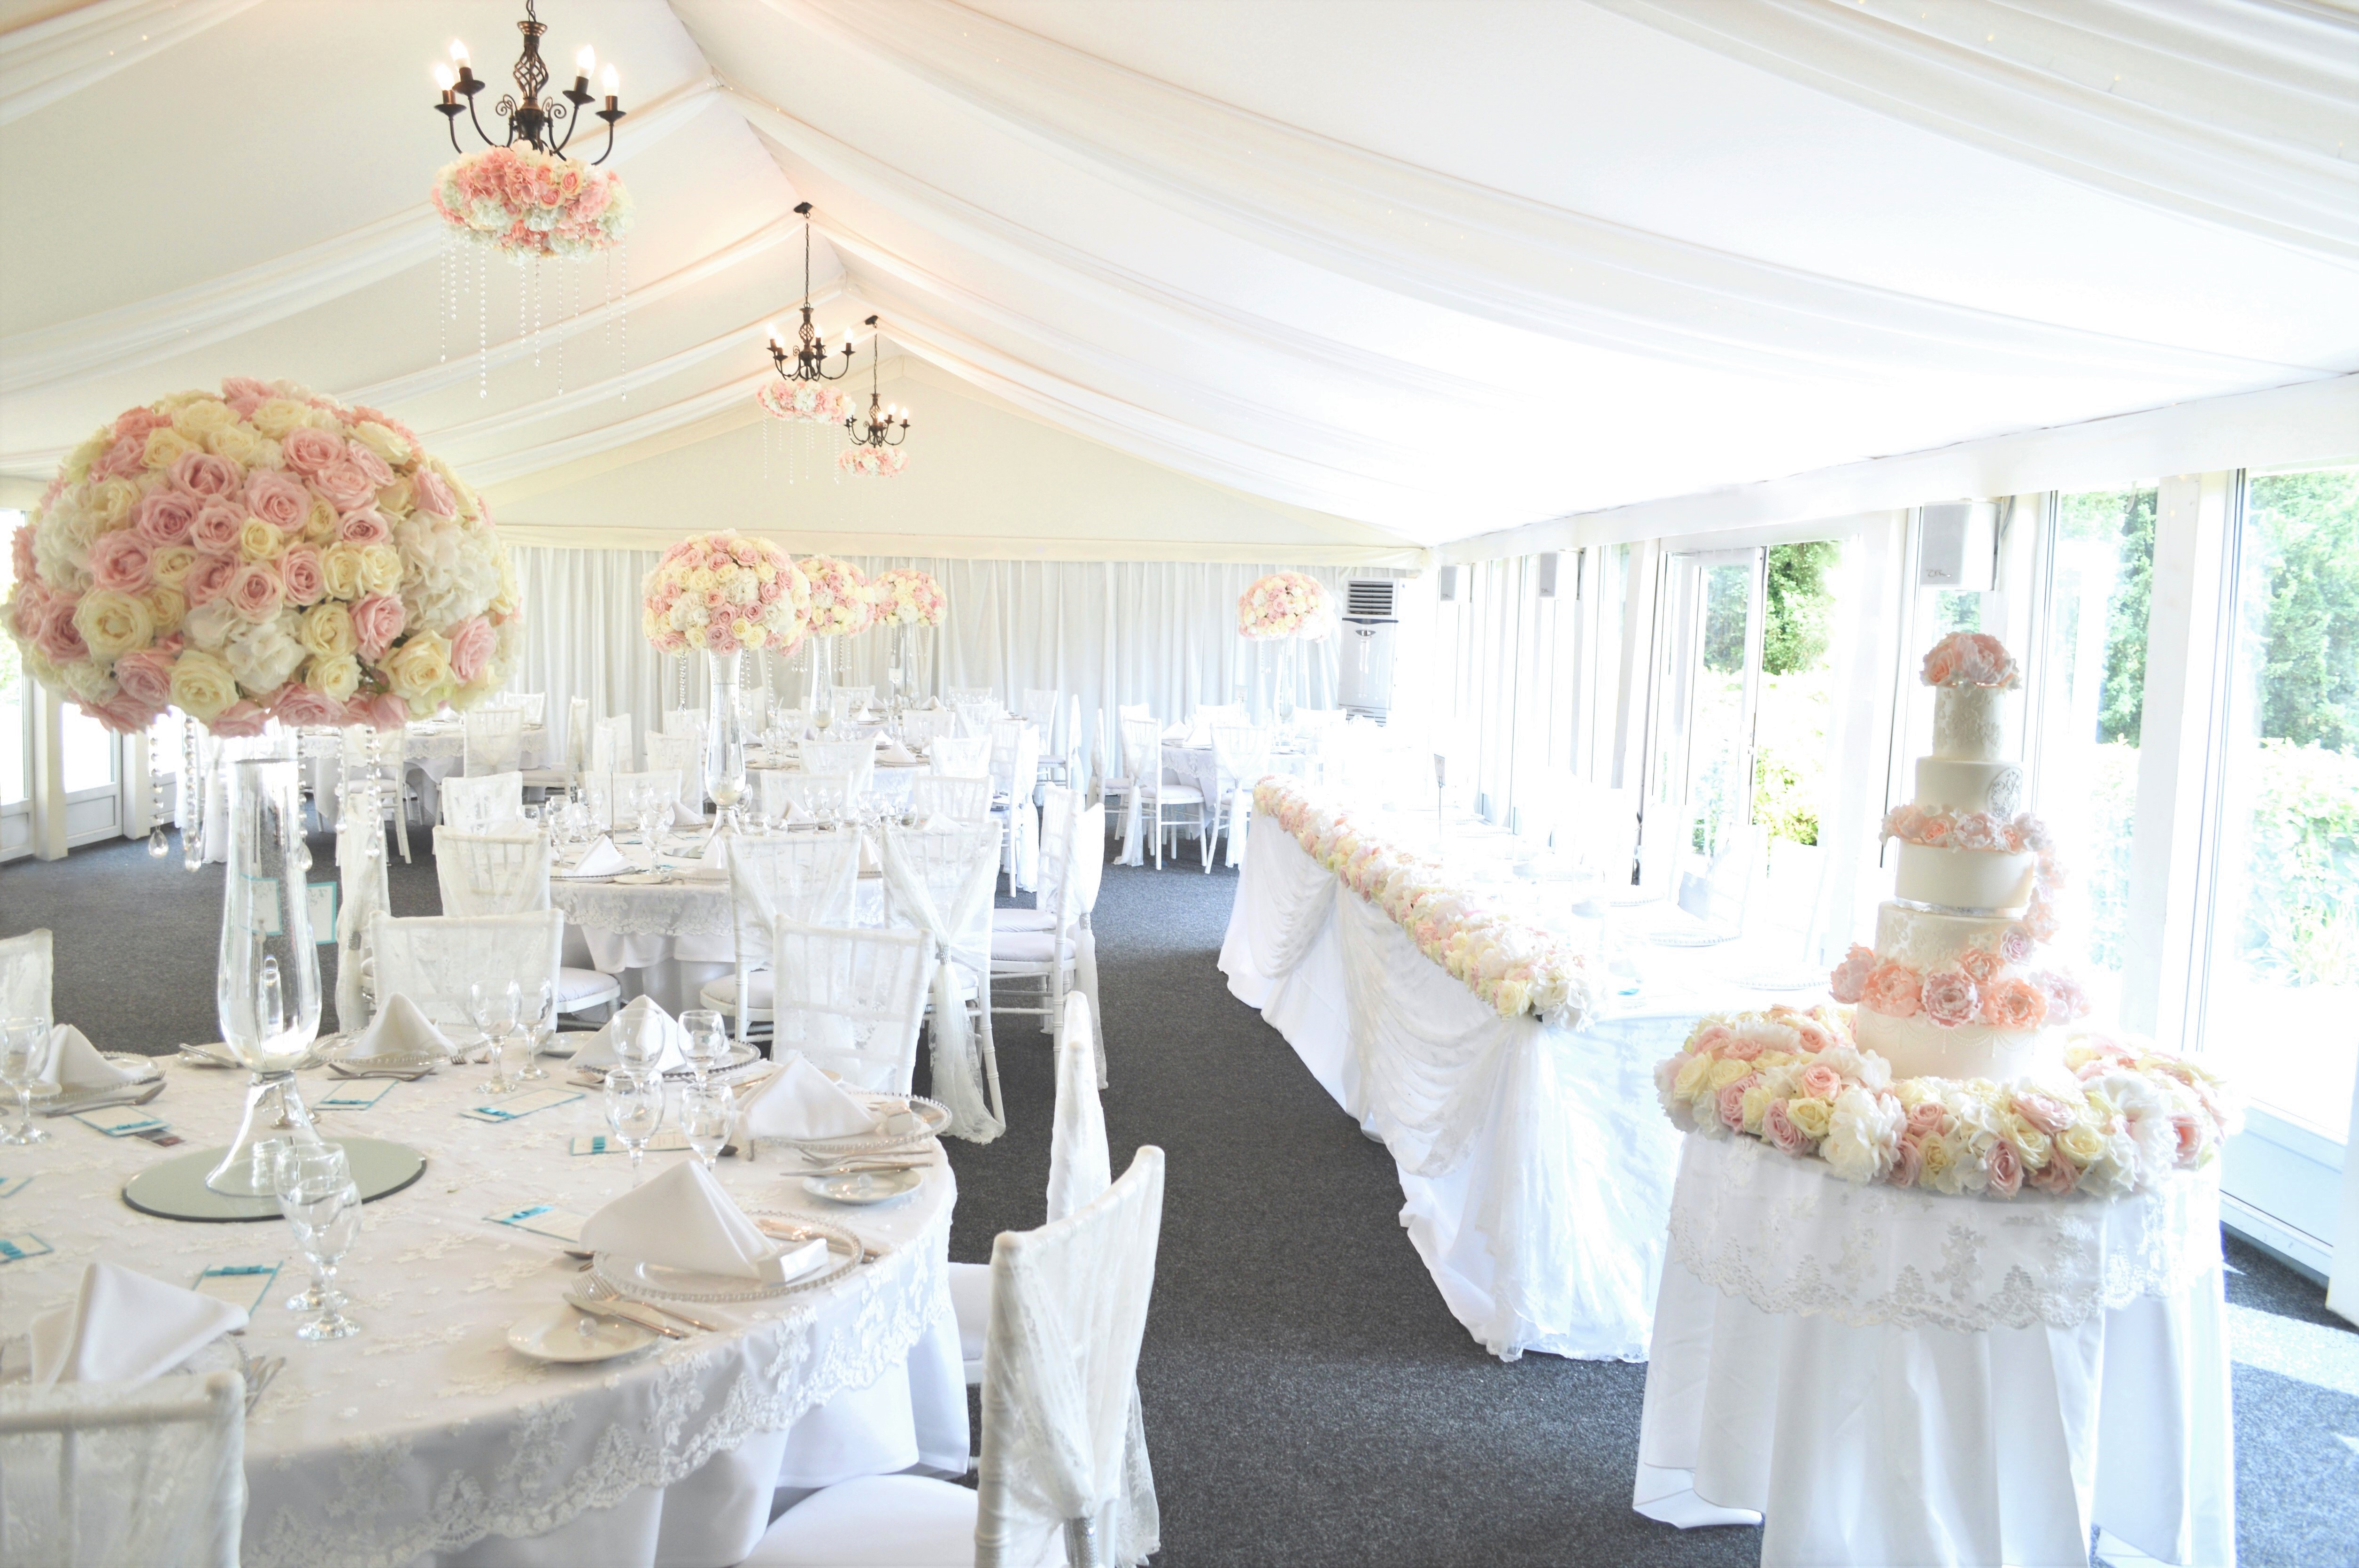 Luxury Blush Pink and White Wedding Flowers and Cake at Hunton Park Peony Hydrangeas and Roses Tall Vase Centrepieces with Crystals and Floral Chandelier Headtop Cherie Kelly Wedding Cake London